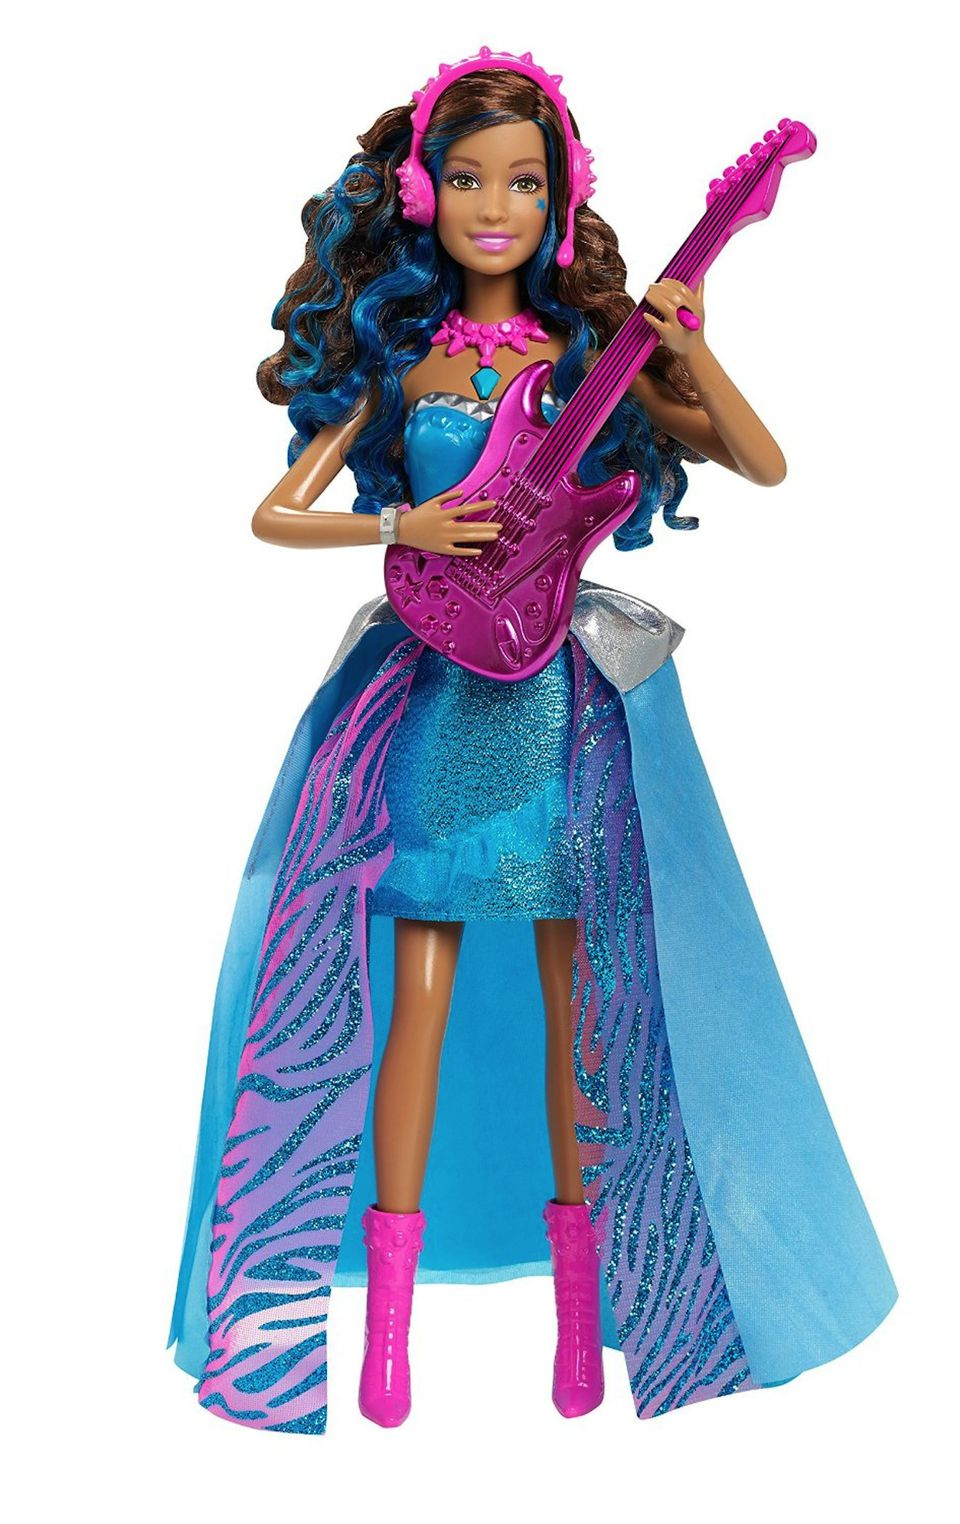 barbie and her accessories are perfect for christmas gifting